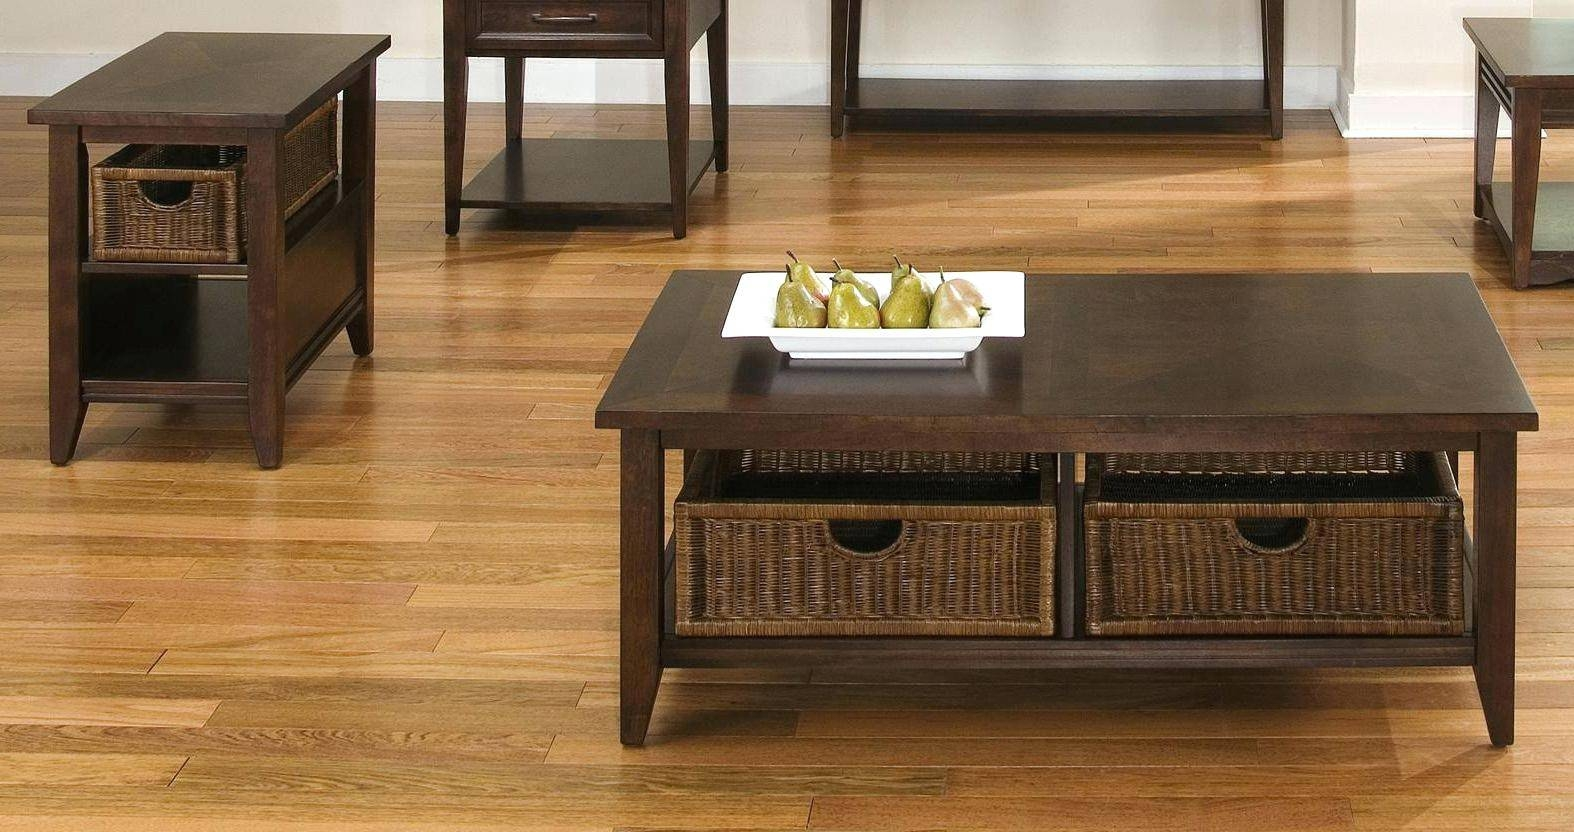 Modular Wire Storage Cubes Modern White Coffee Table With Two in White Coffee Tables With Baskets (Image 26 of 30)